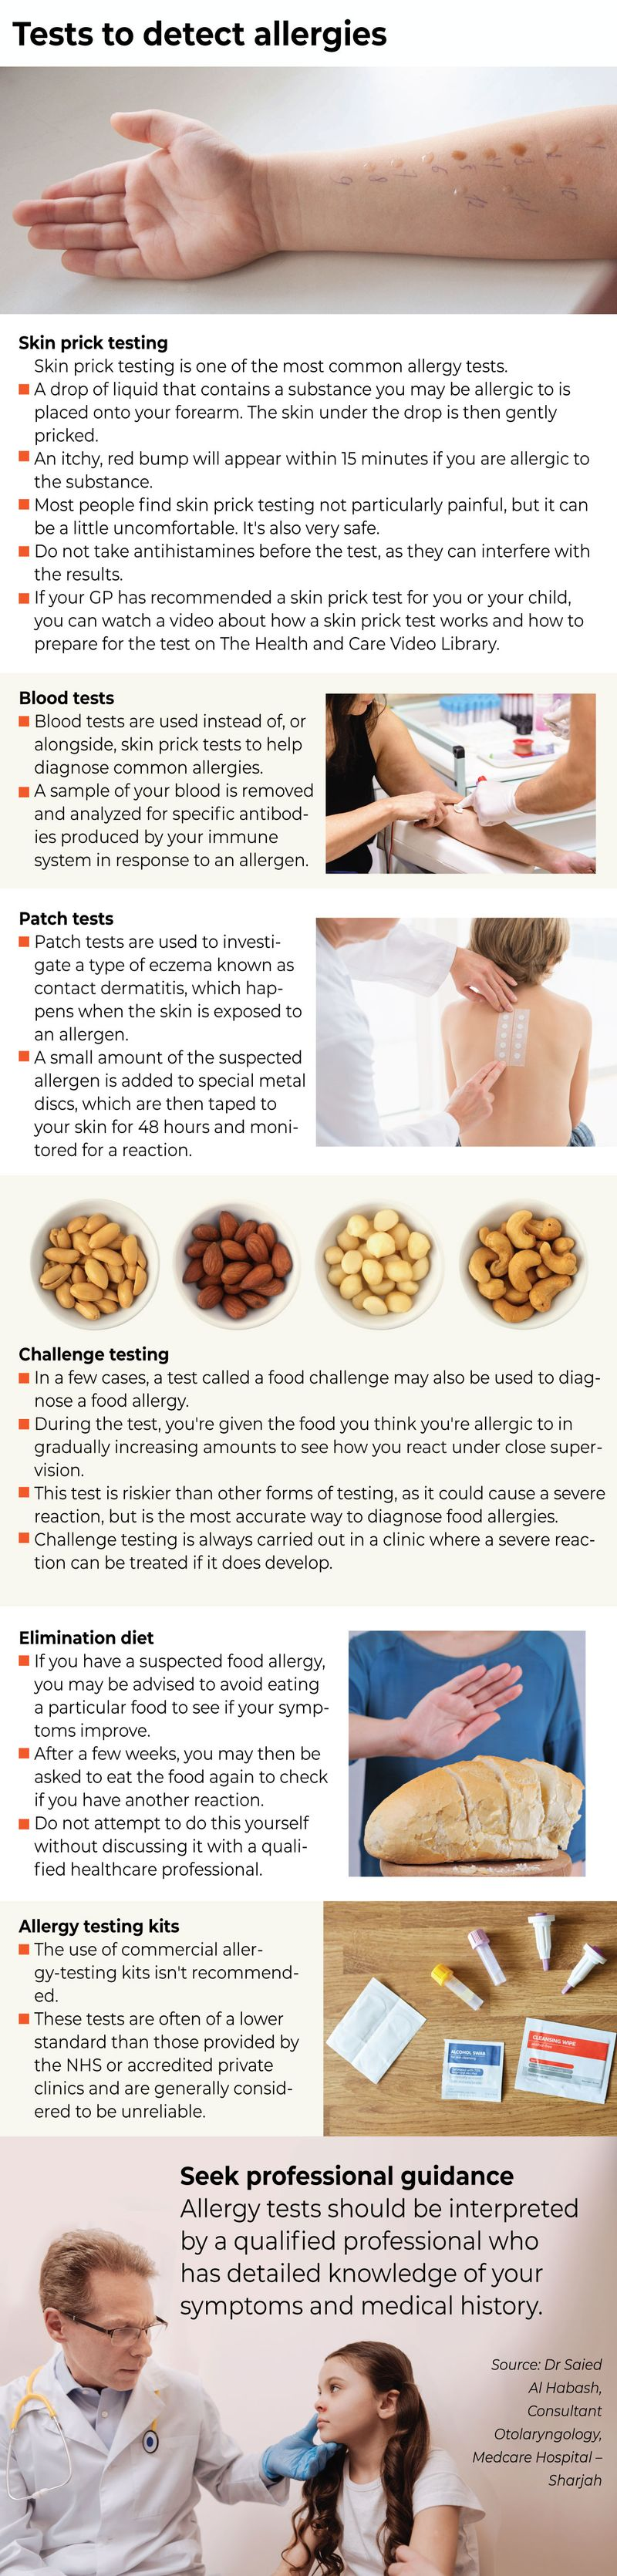 Allergy tests